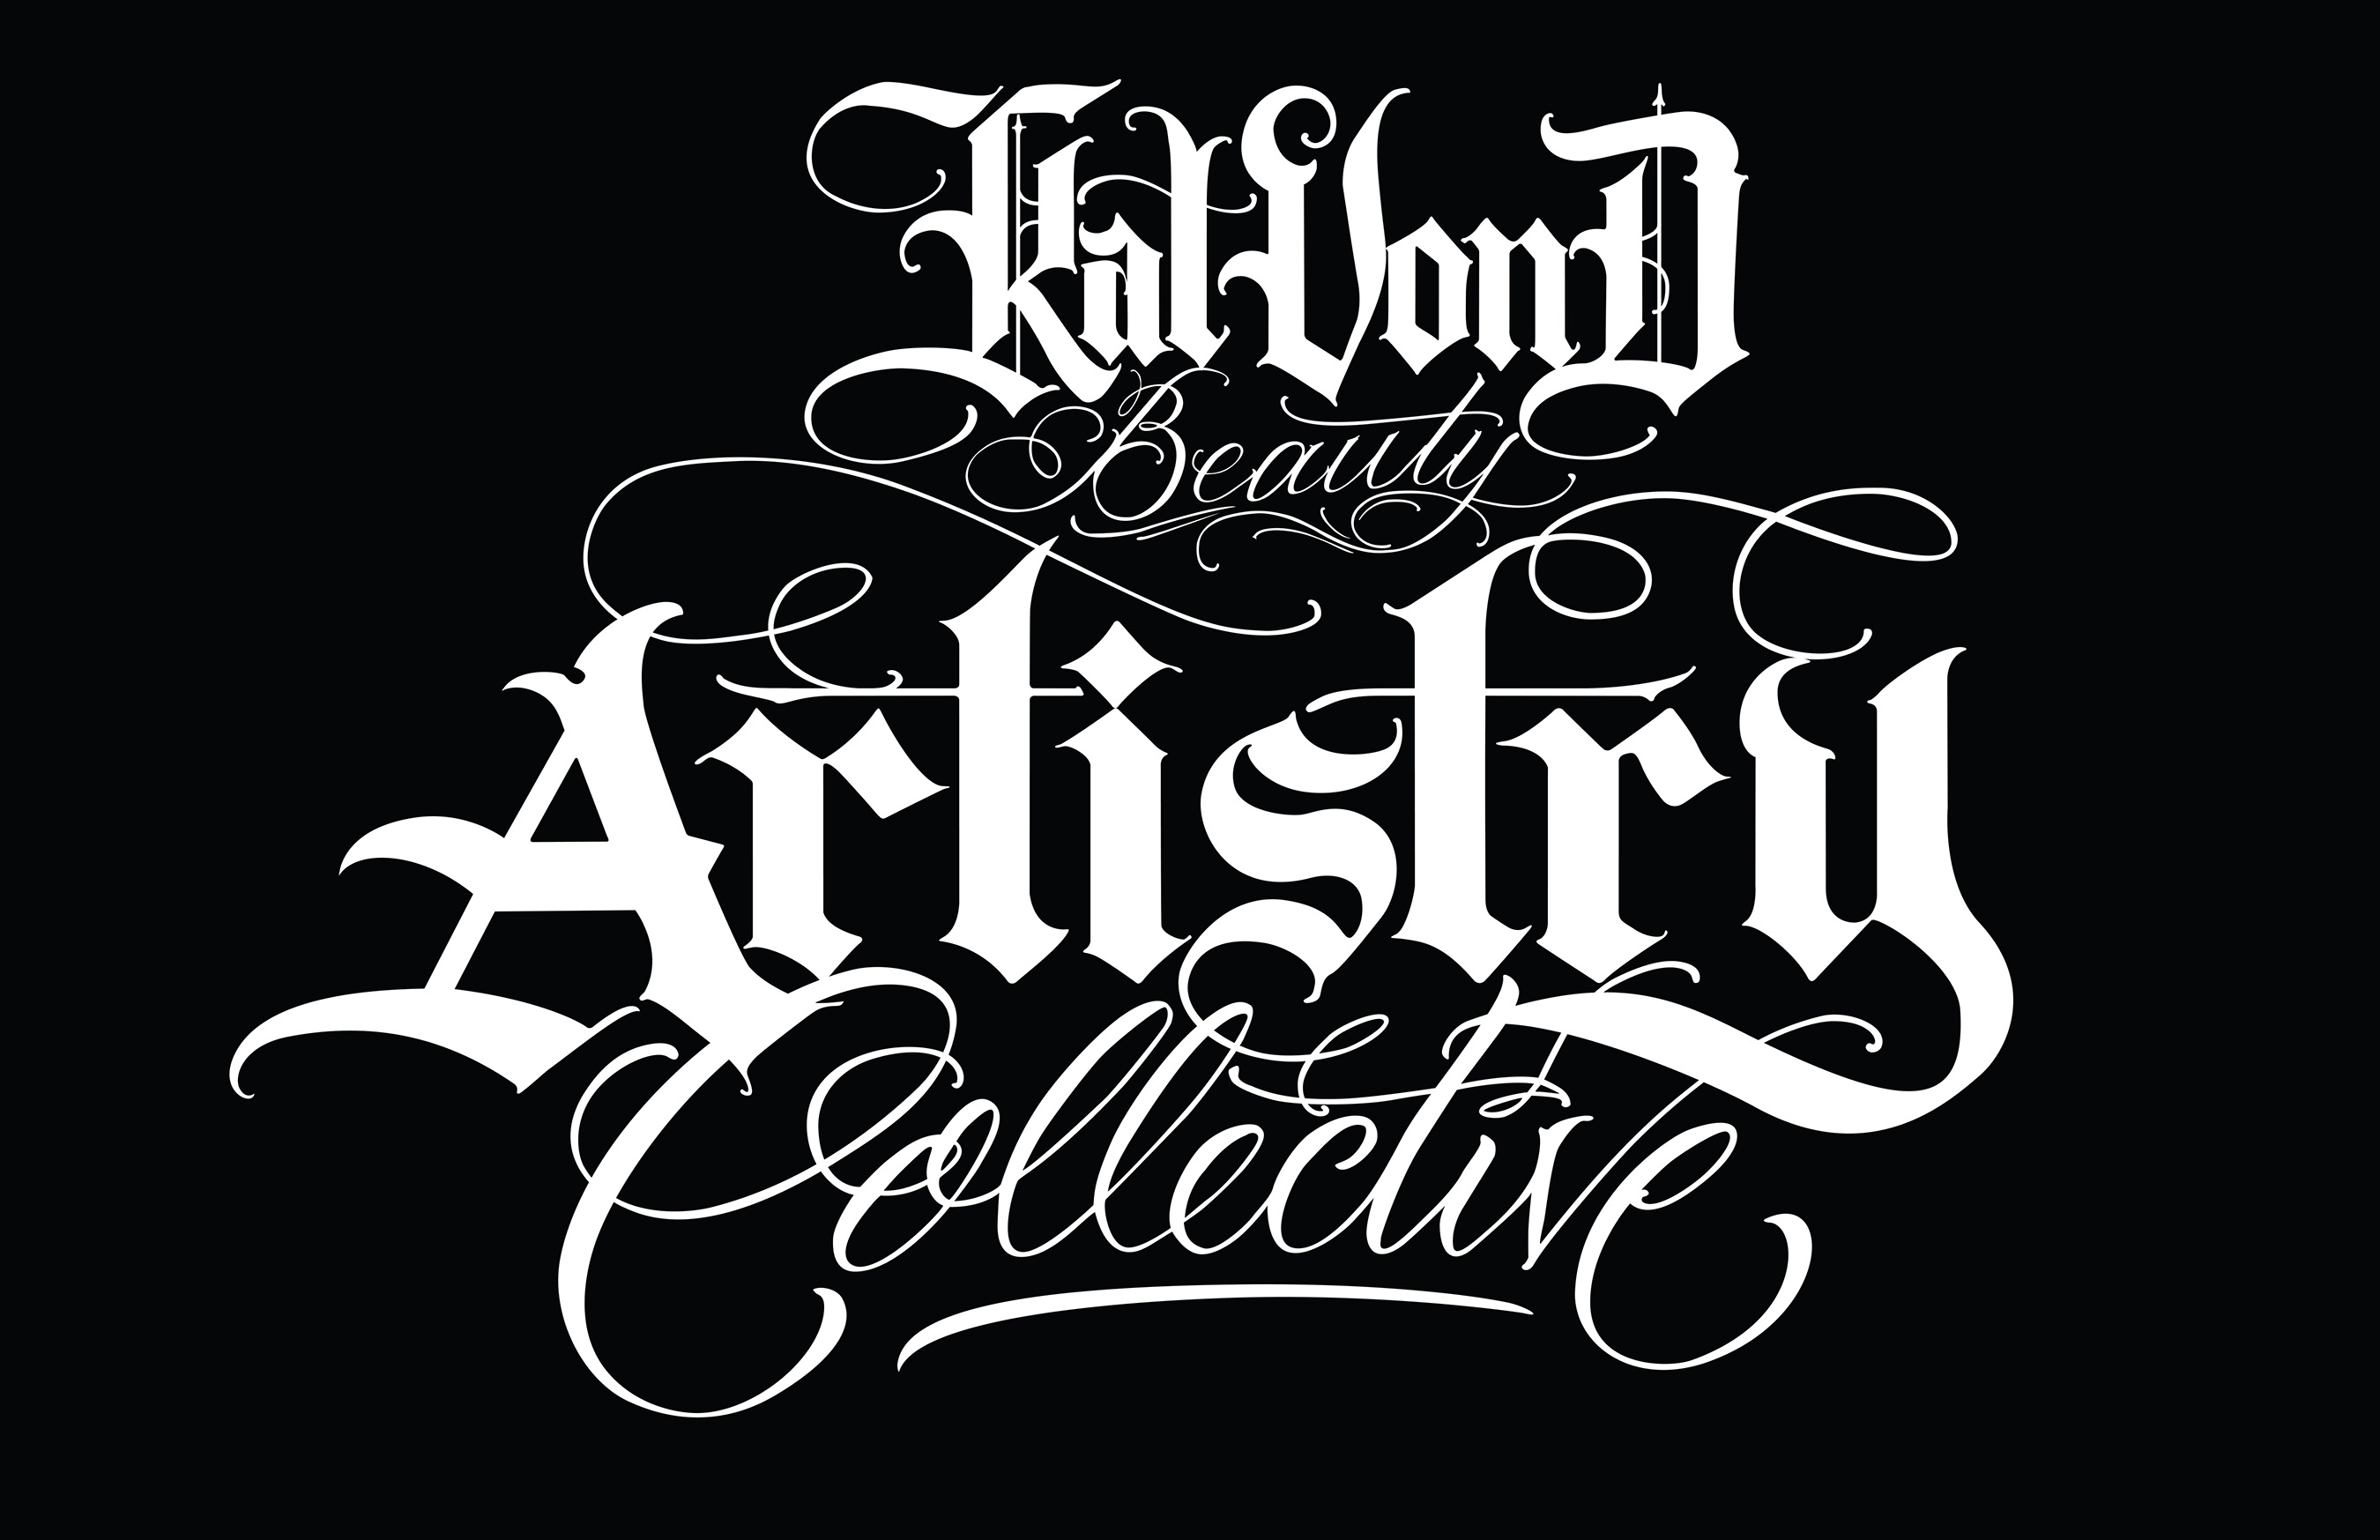 Artistry Collective Logo. Credit: BJ Betts